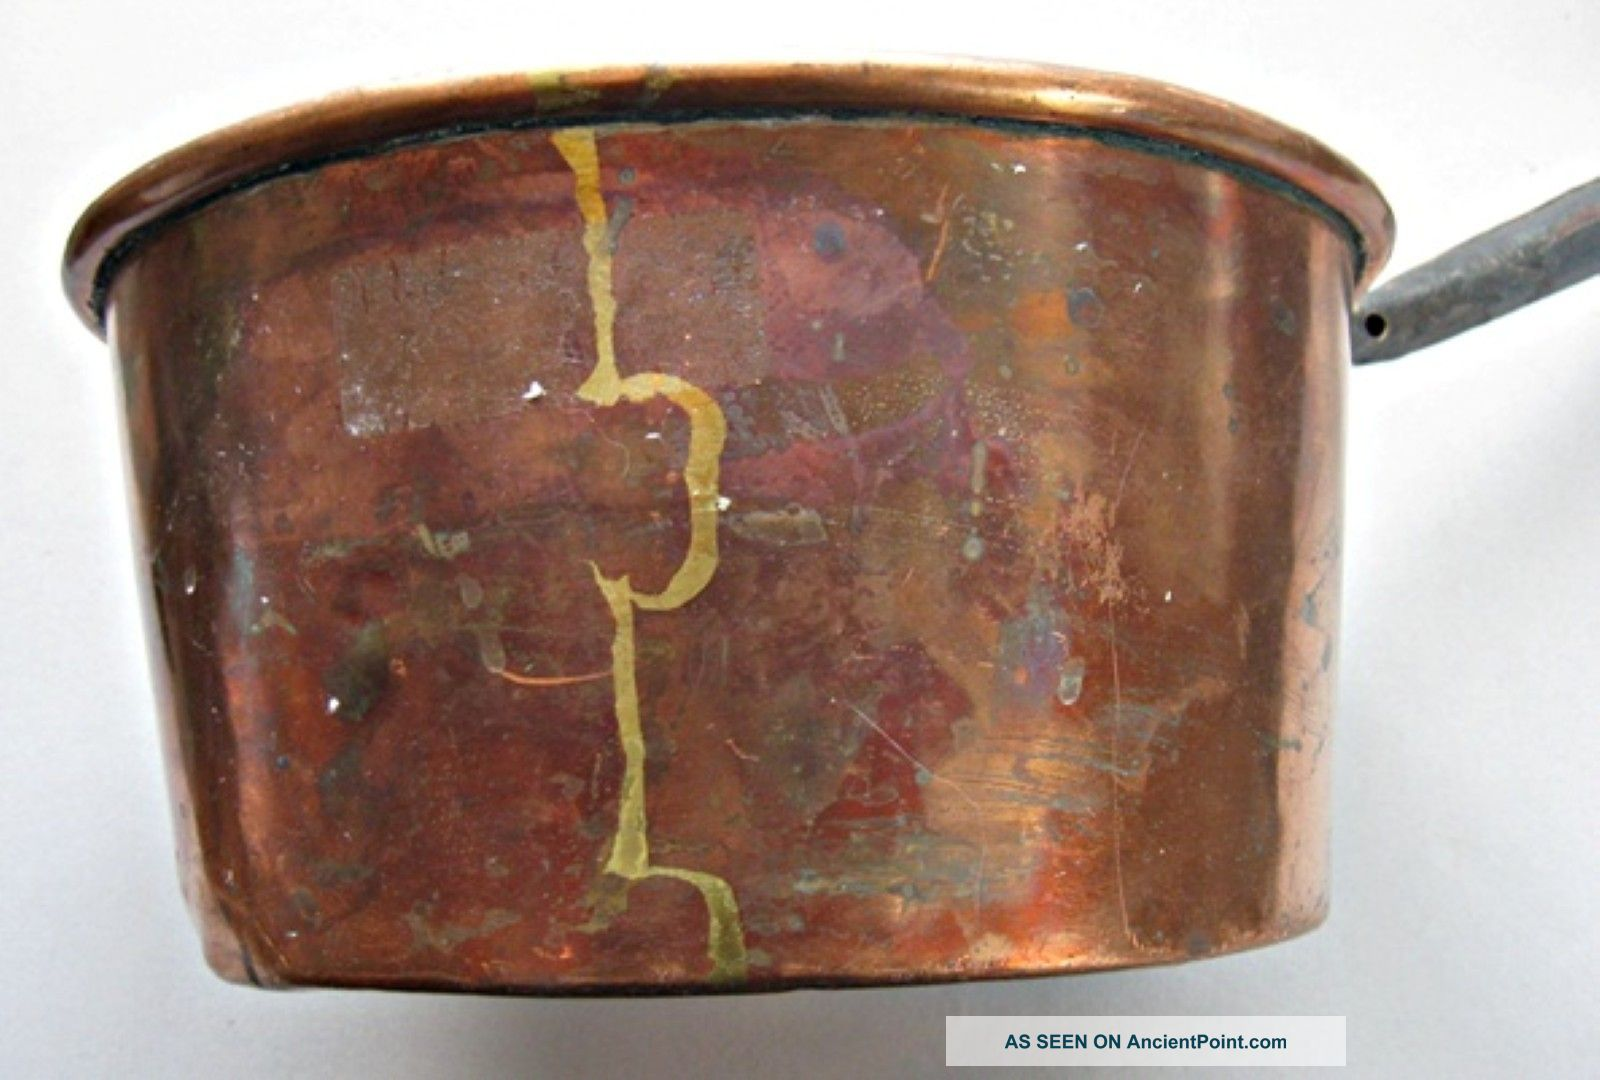 Antique Copper Long Handled Cooking Pot - Dovetailed Construction - Early 1800's Hearth Ware photo